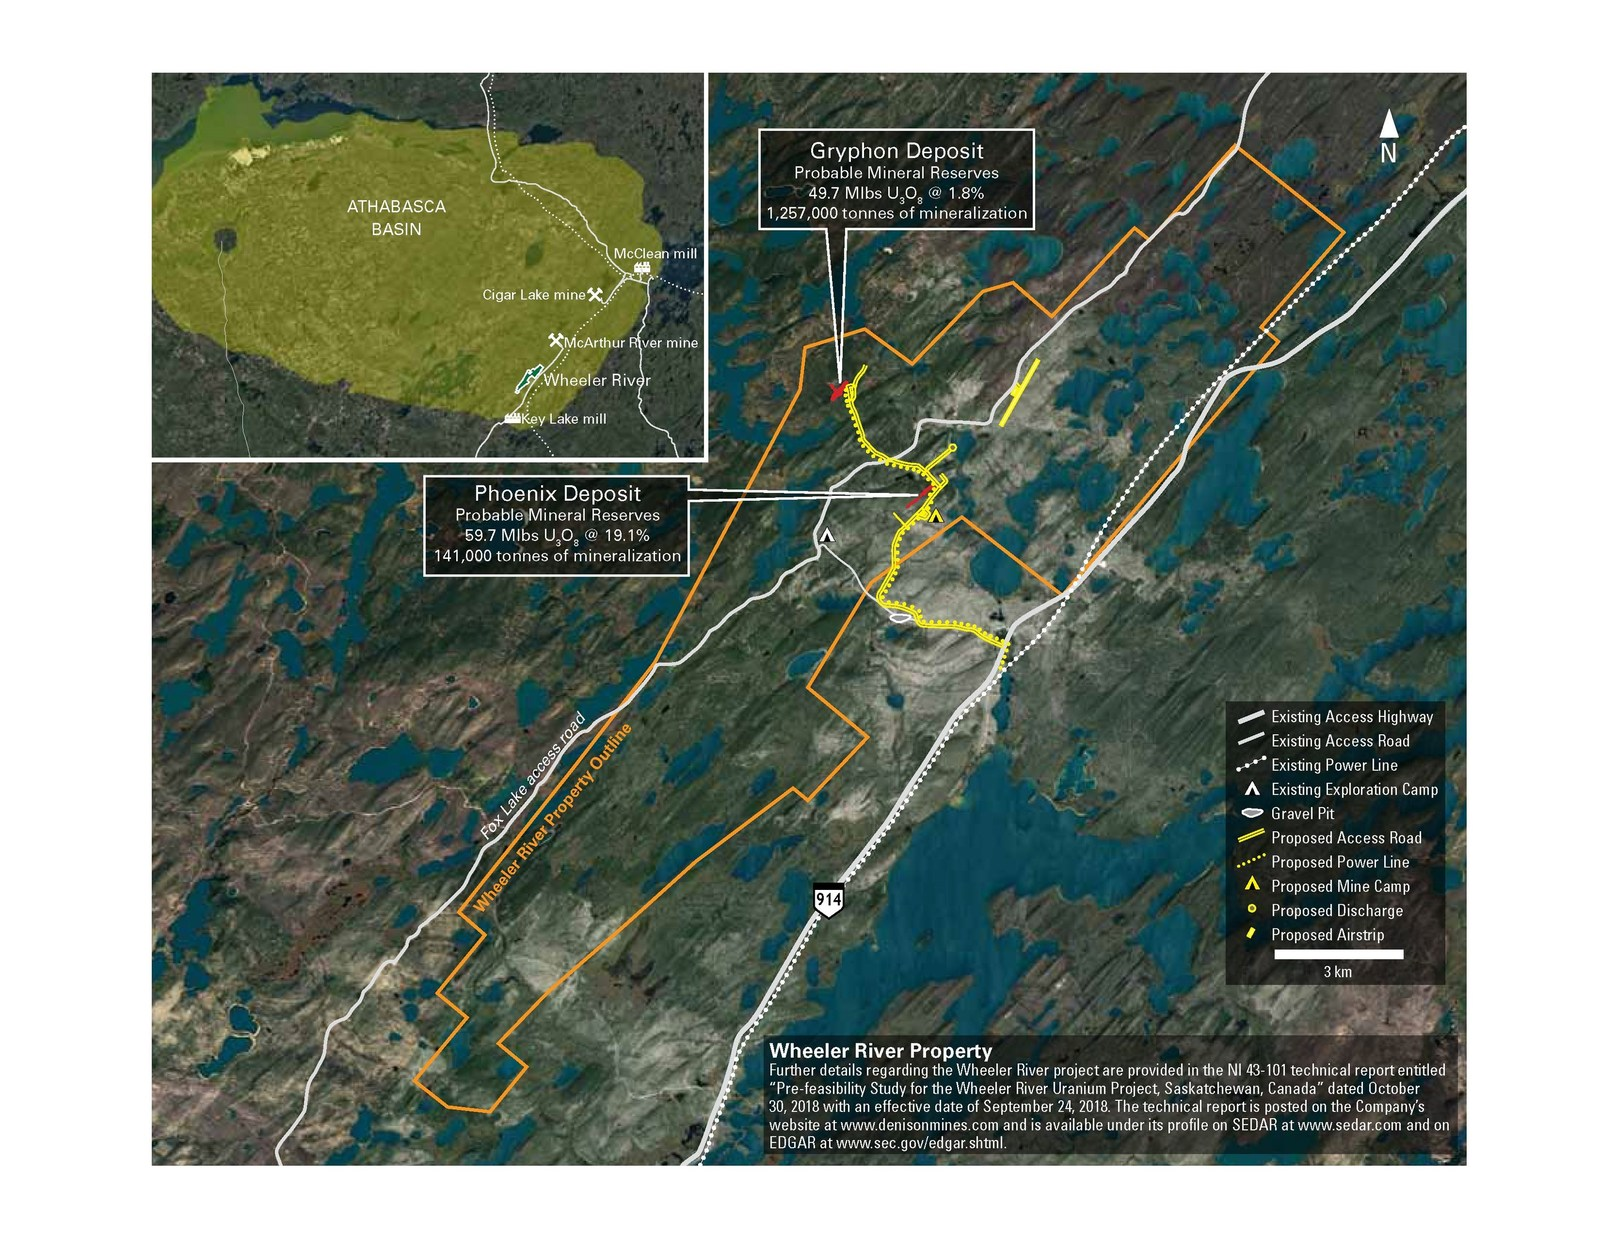 Figure 1: Location map of the Wheeler River project, showing existing and proposed infrastructure